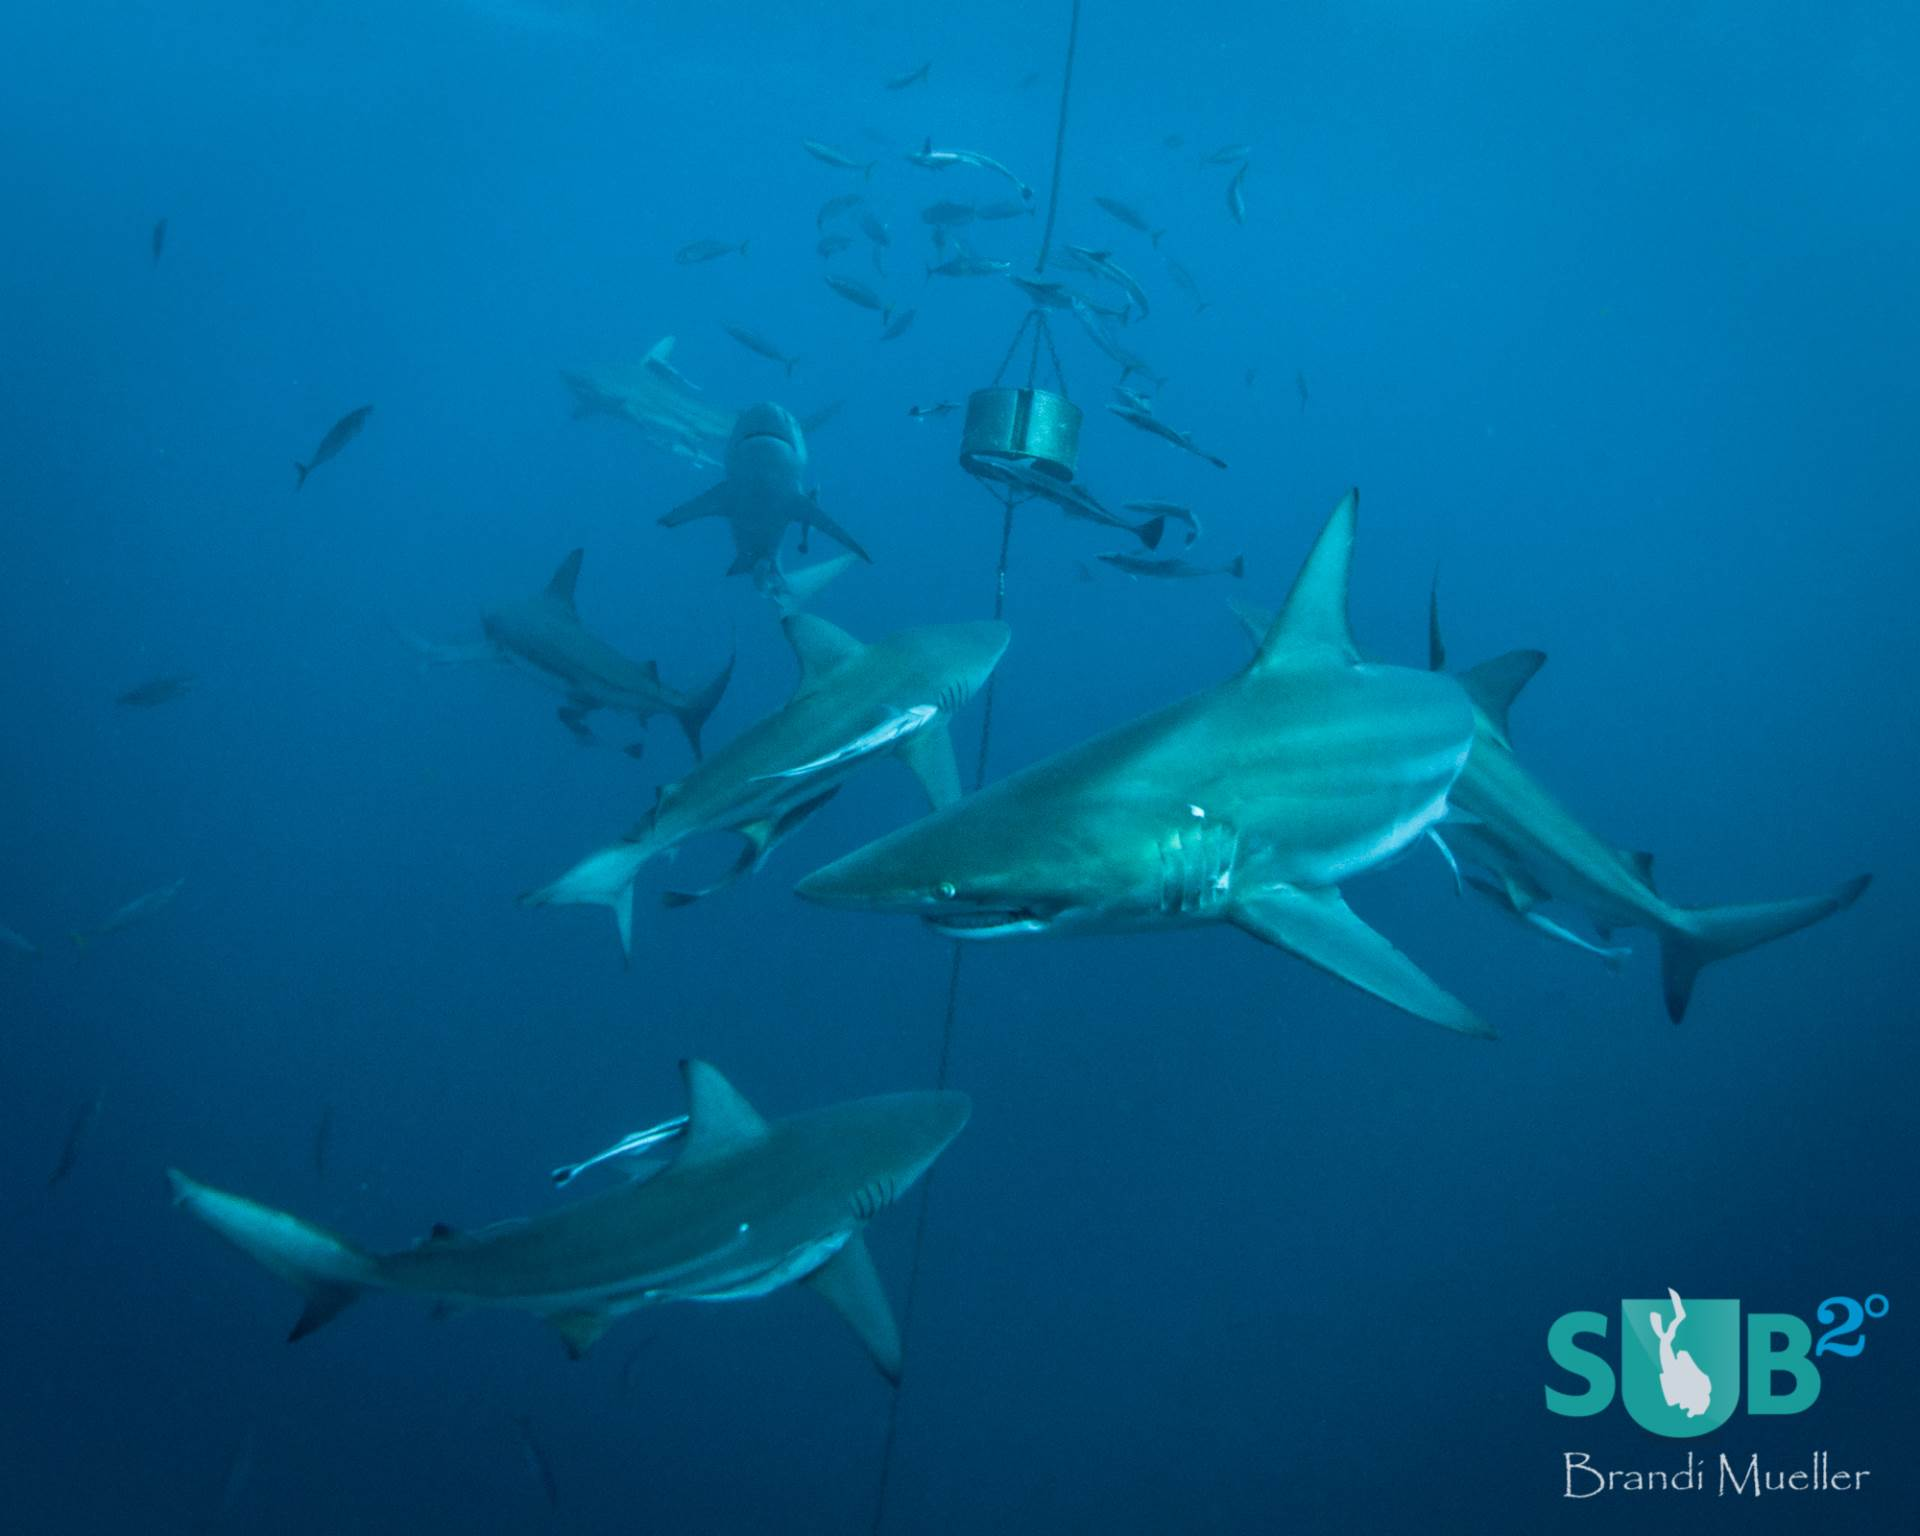 Although they don't get as much attention from divers as the tiger sharks, black tip reef sharks show up for the dives too, often more than 40 or 50 of them.